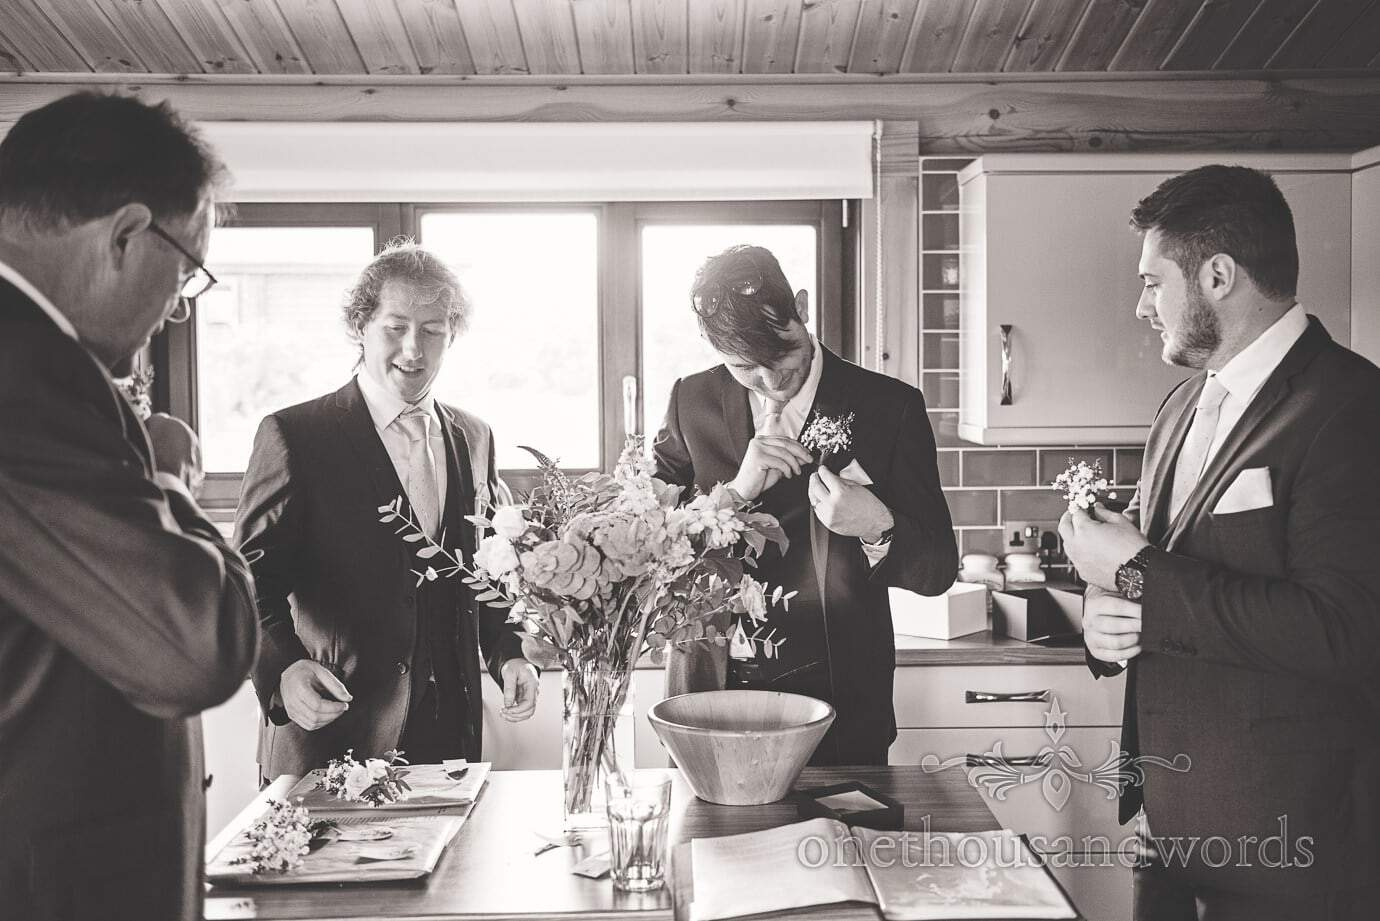 Black and white wedding photograph of grooms morning wedding preparation